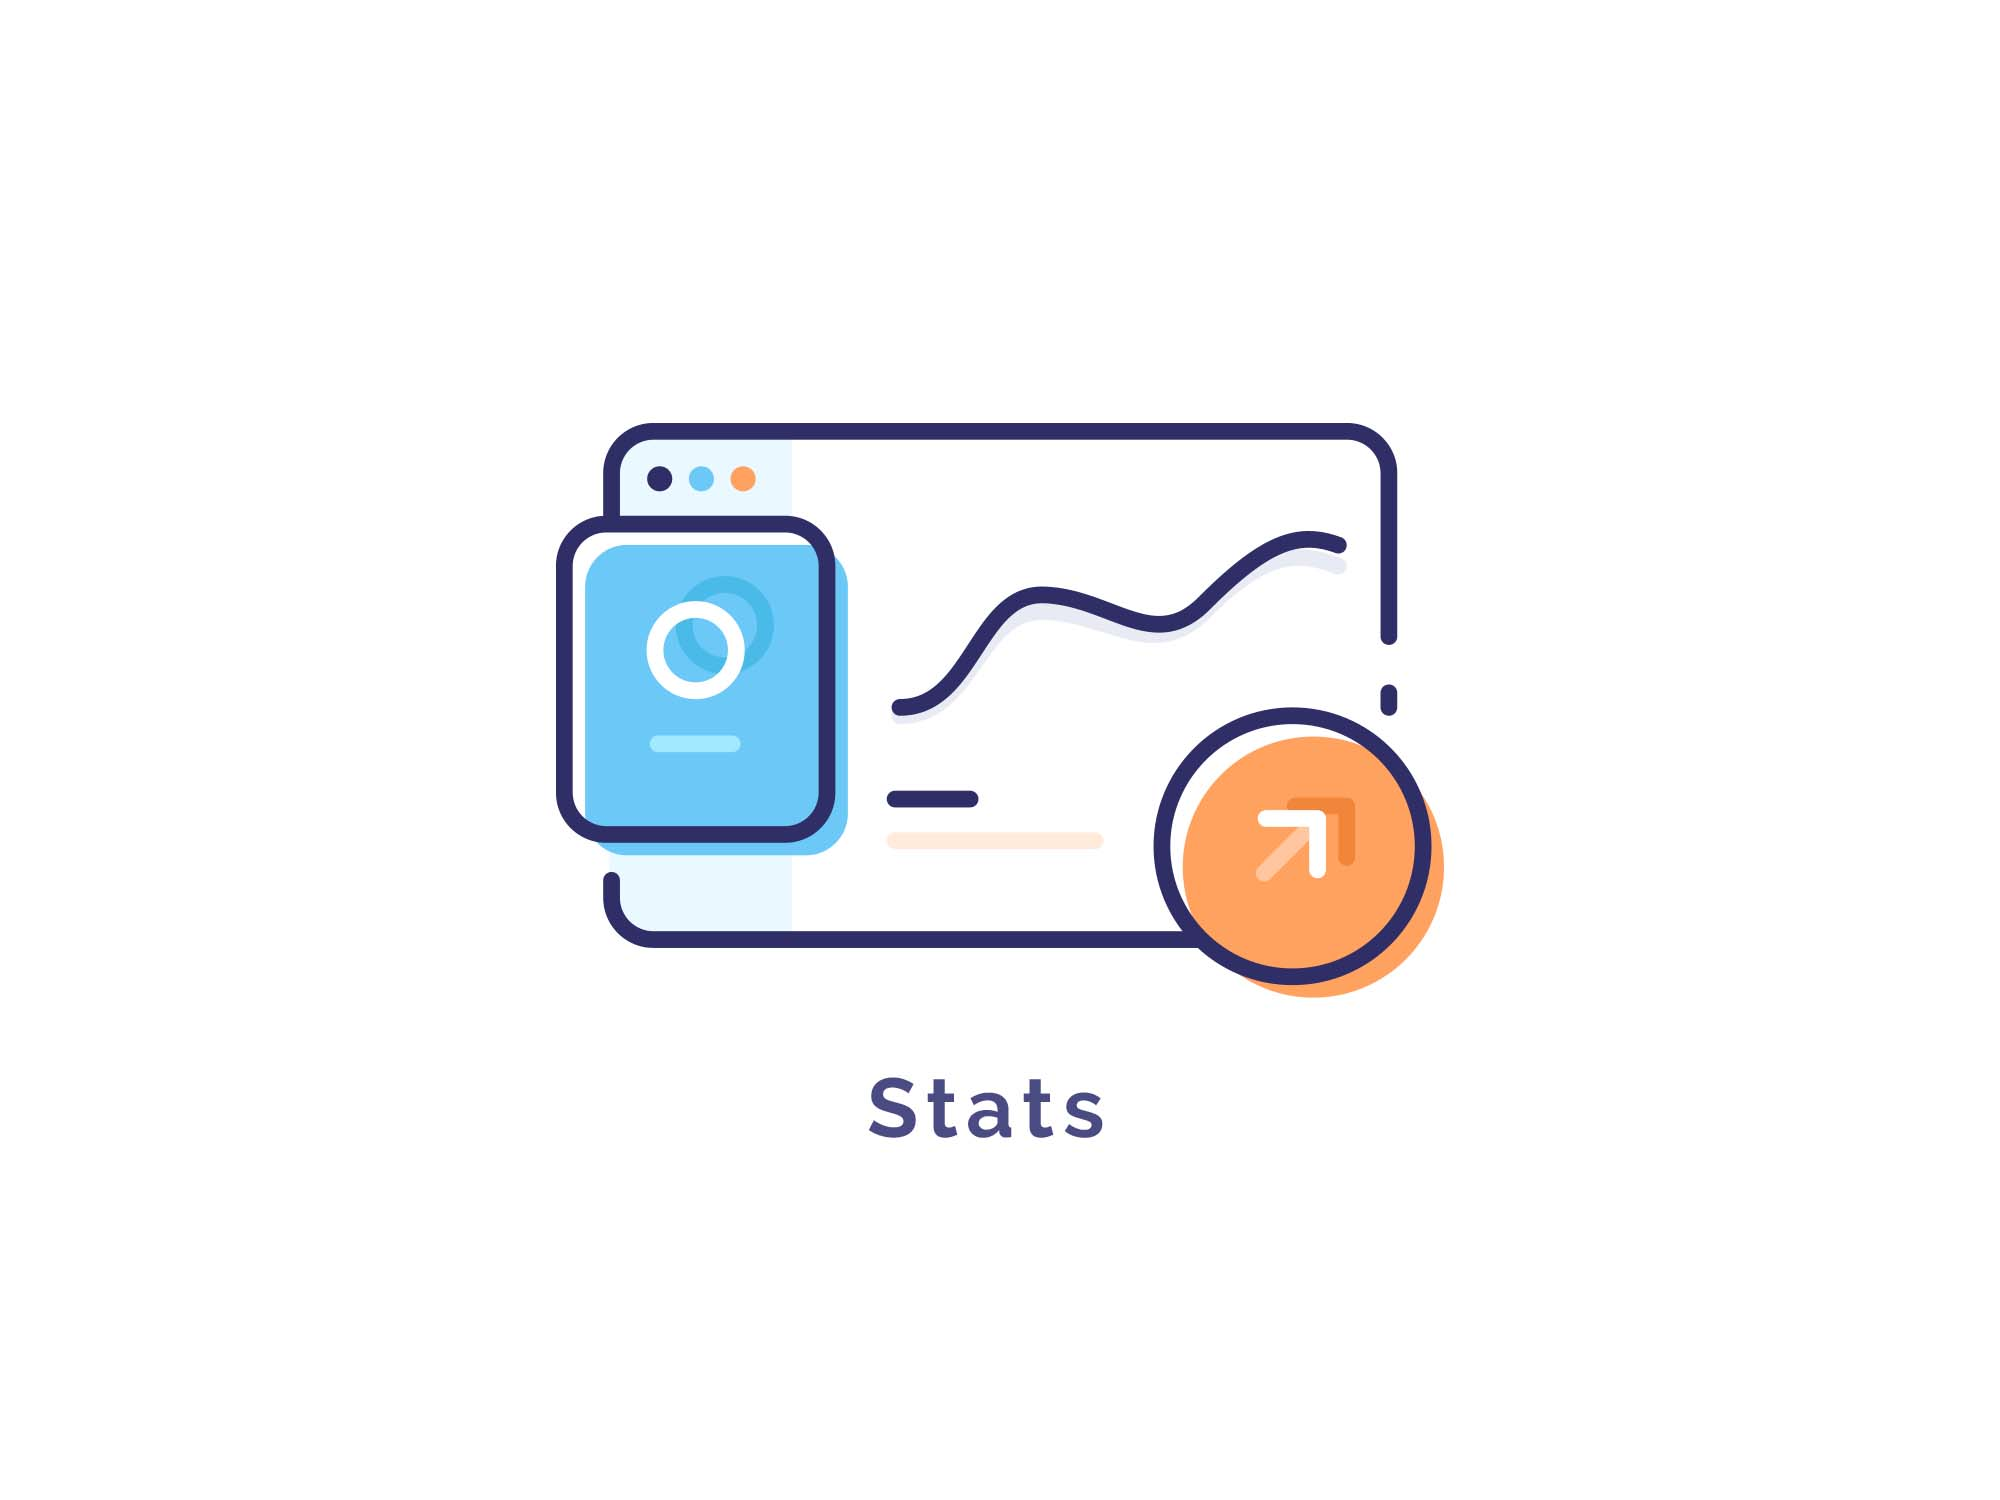 Stats Icon